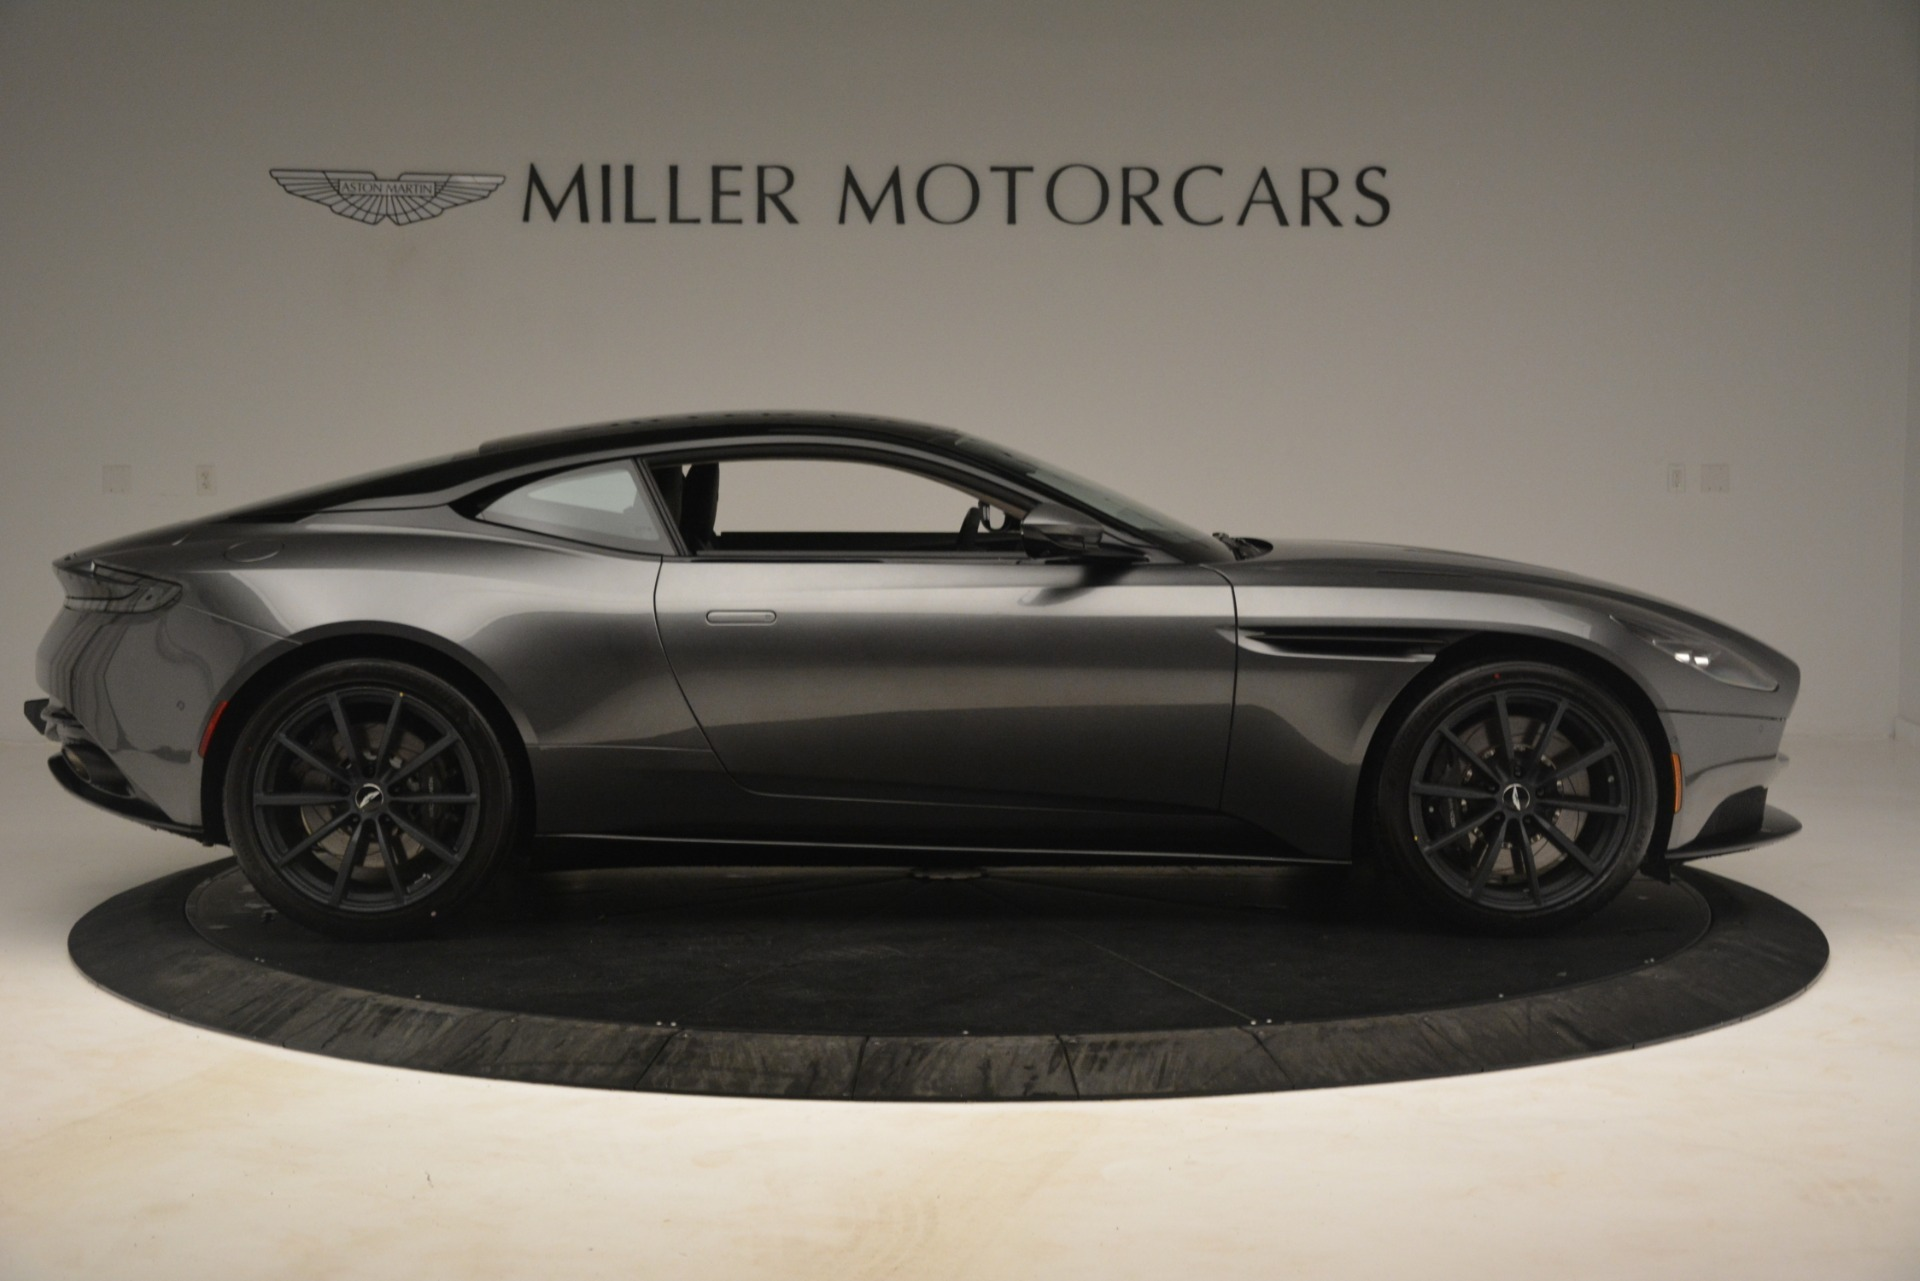 New 2019 Aston Martin Db11 V12 Amr Coupe For Sale Miller Motorcars Stock A1366